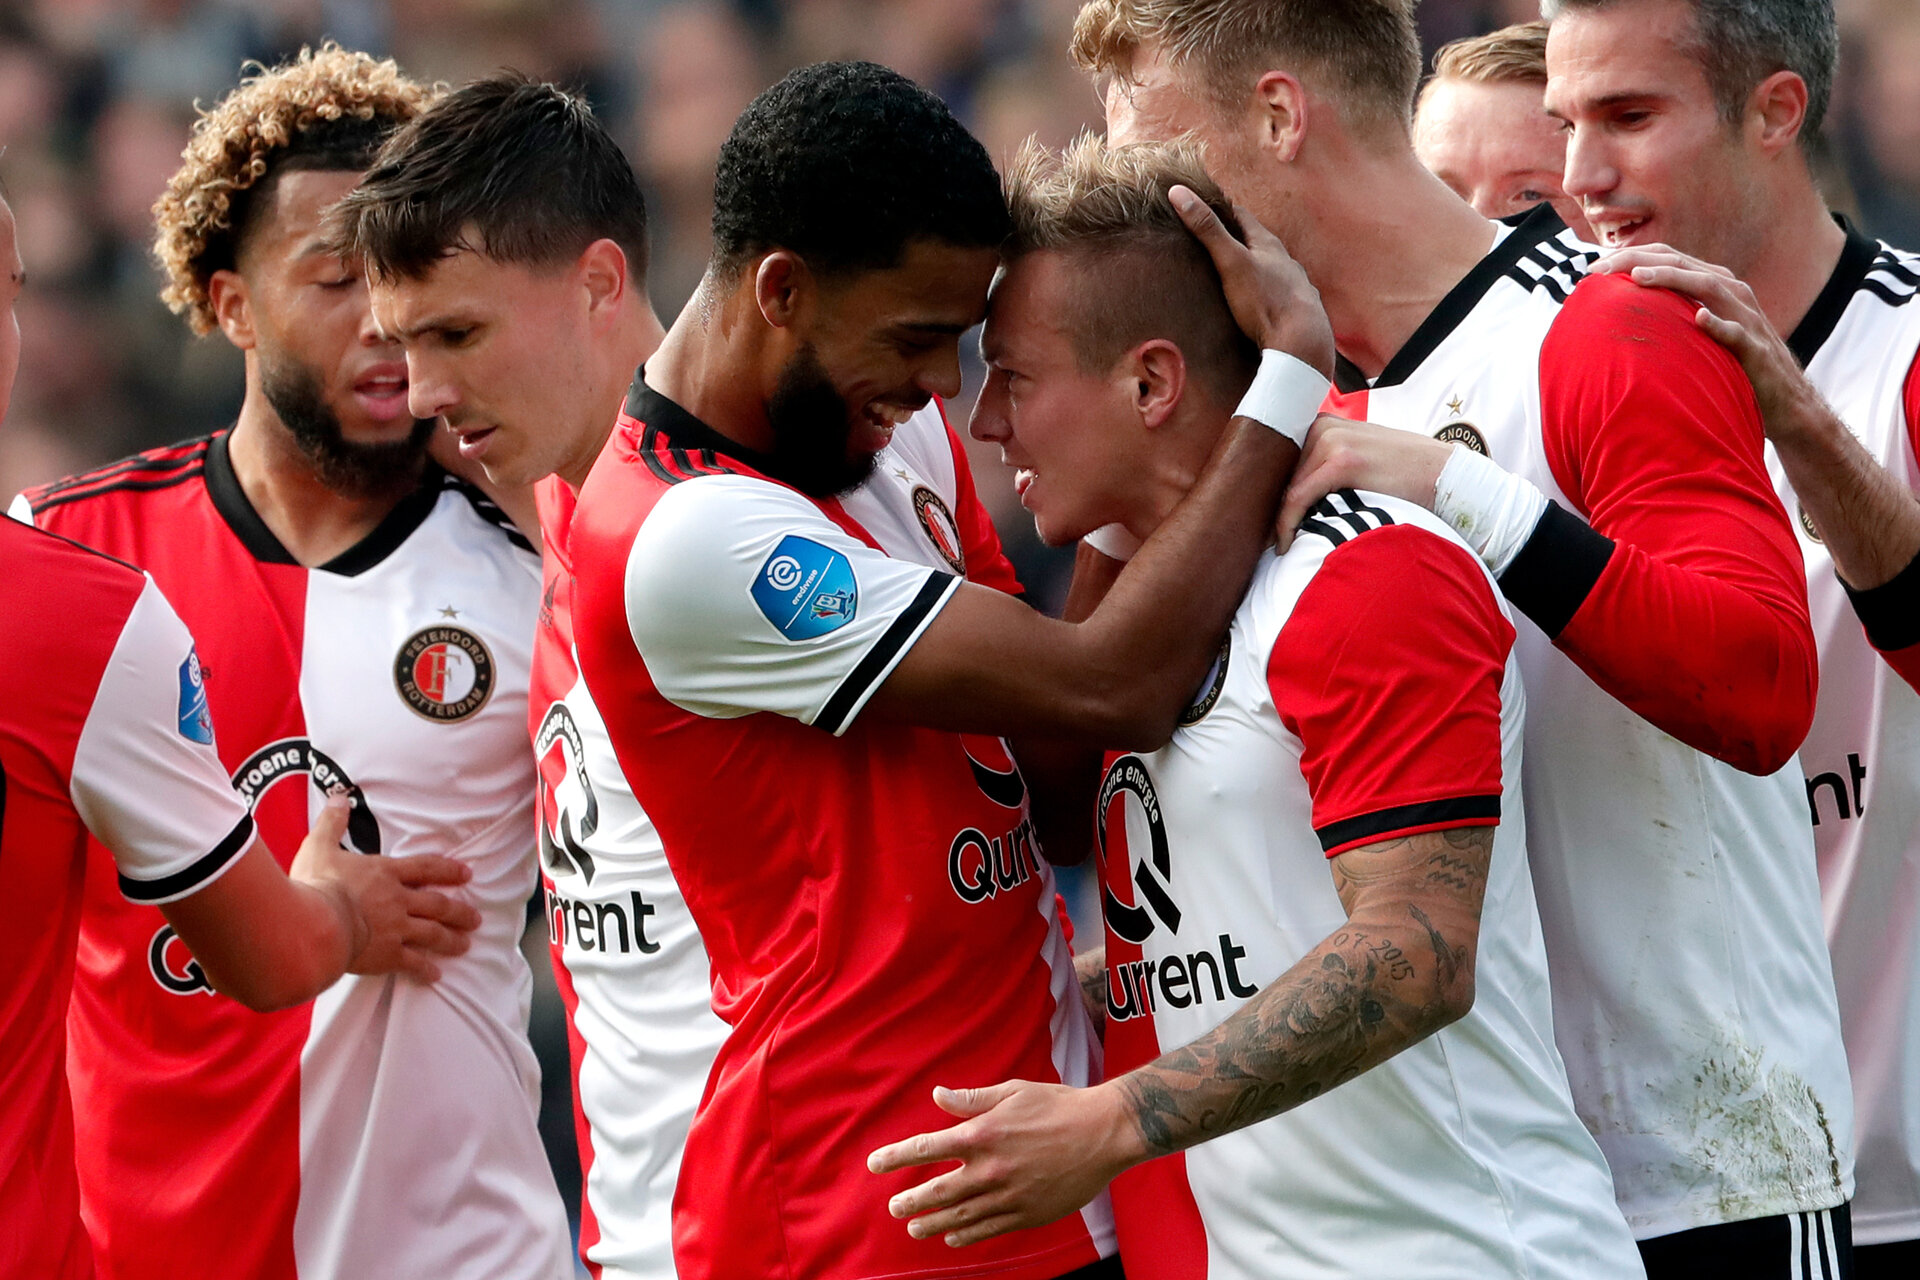 ROTTERDAM, NETHERLANDS - OCTOBER 21: Jordy Clasie of Feyenoord celebrates 1-0 with Calvin Verdonk of Feyenoord, Tonny Vilhena of Feyenoord, Jeremiah St Juste of Feyenoord, Sam Larsson of Feyenoord, Nicolai Jorgensen of Feyenoord, Robin van Persie of Feyenoord  during the Dutch Eredivisie  match between Feyenoord v PEC Zwolle at the Stadium Feijenoord on October 21, 2018 in Rotterdam Netherlands (Photo by Soccrates/Getty Images)